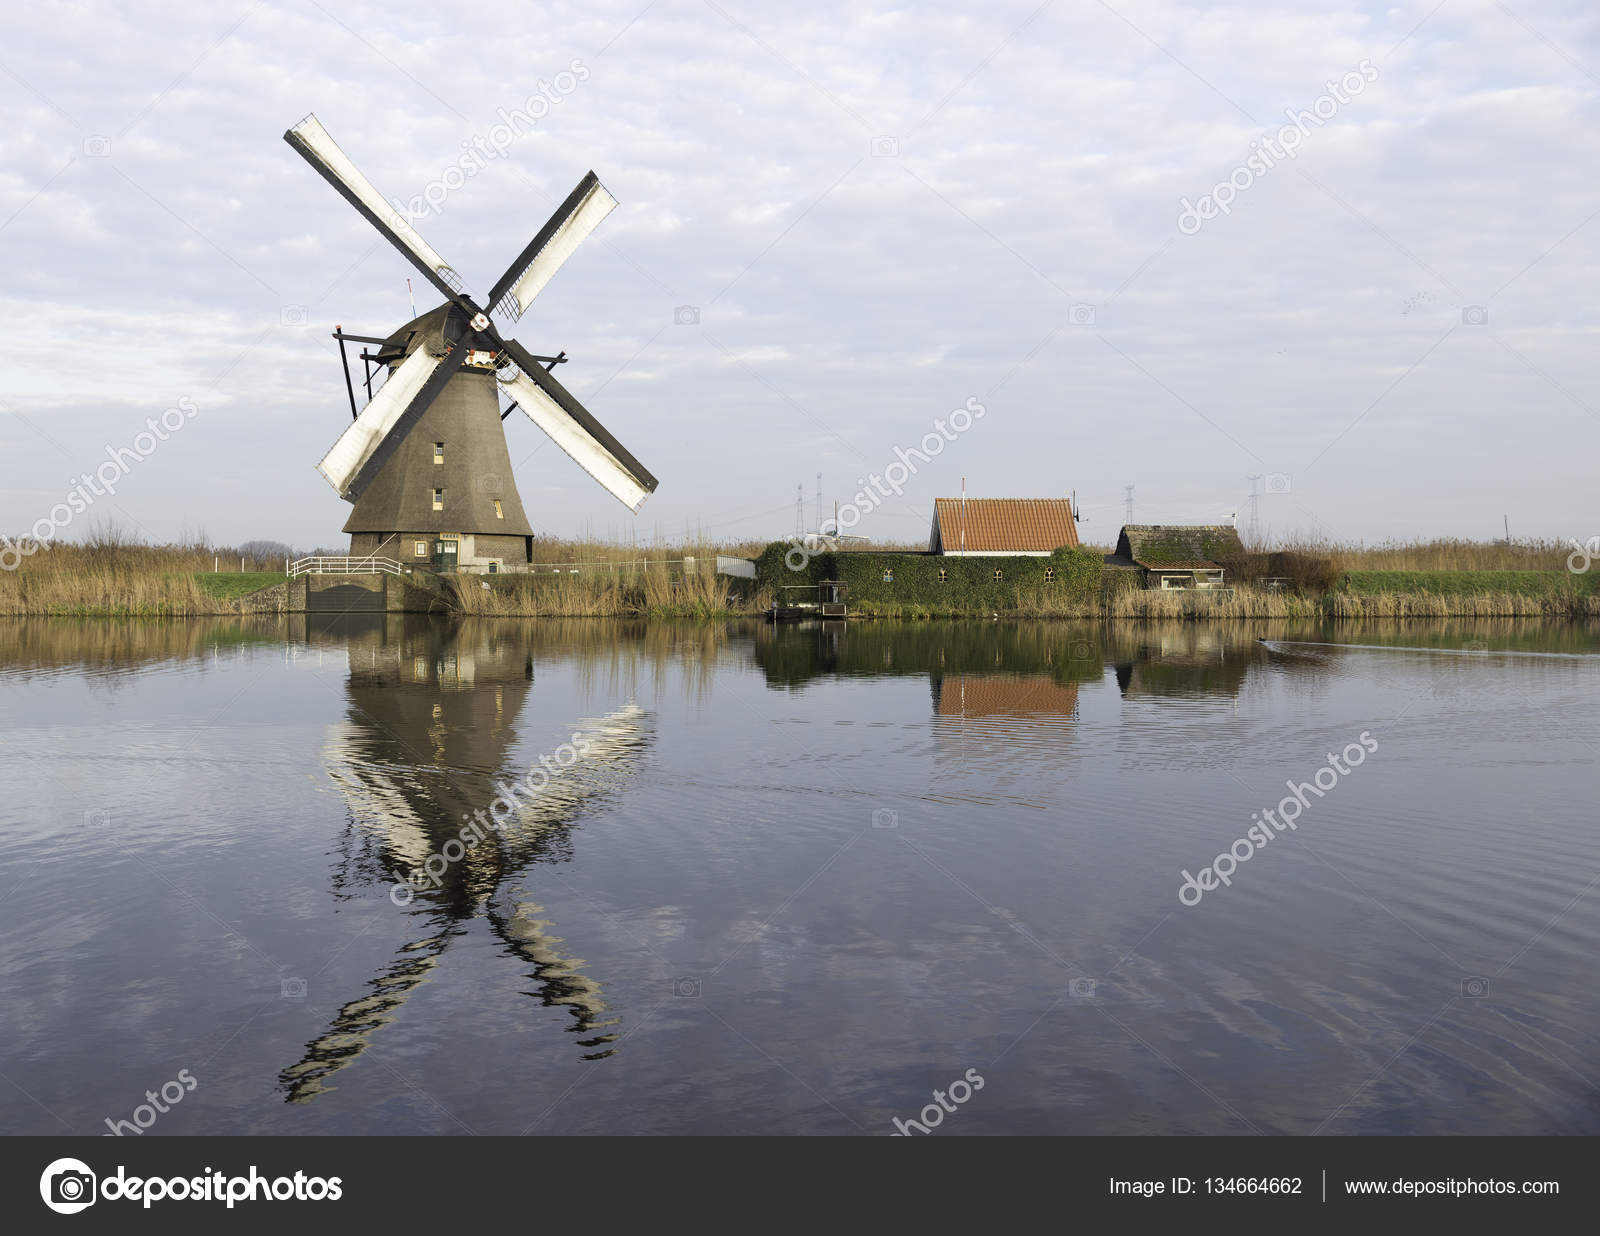 windm hlen in kinderdijk holland stockfoto compuinfoto 134664662. Black Bedroom Furniture Sets. Home Design Ideas